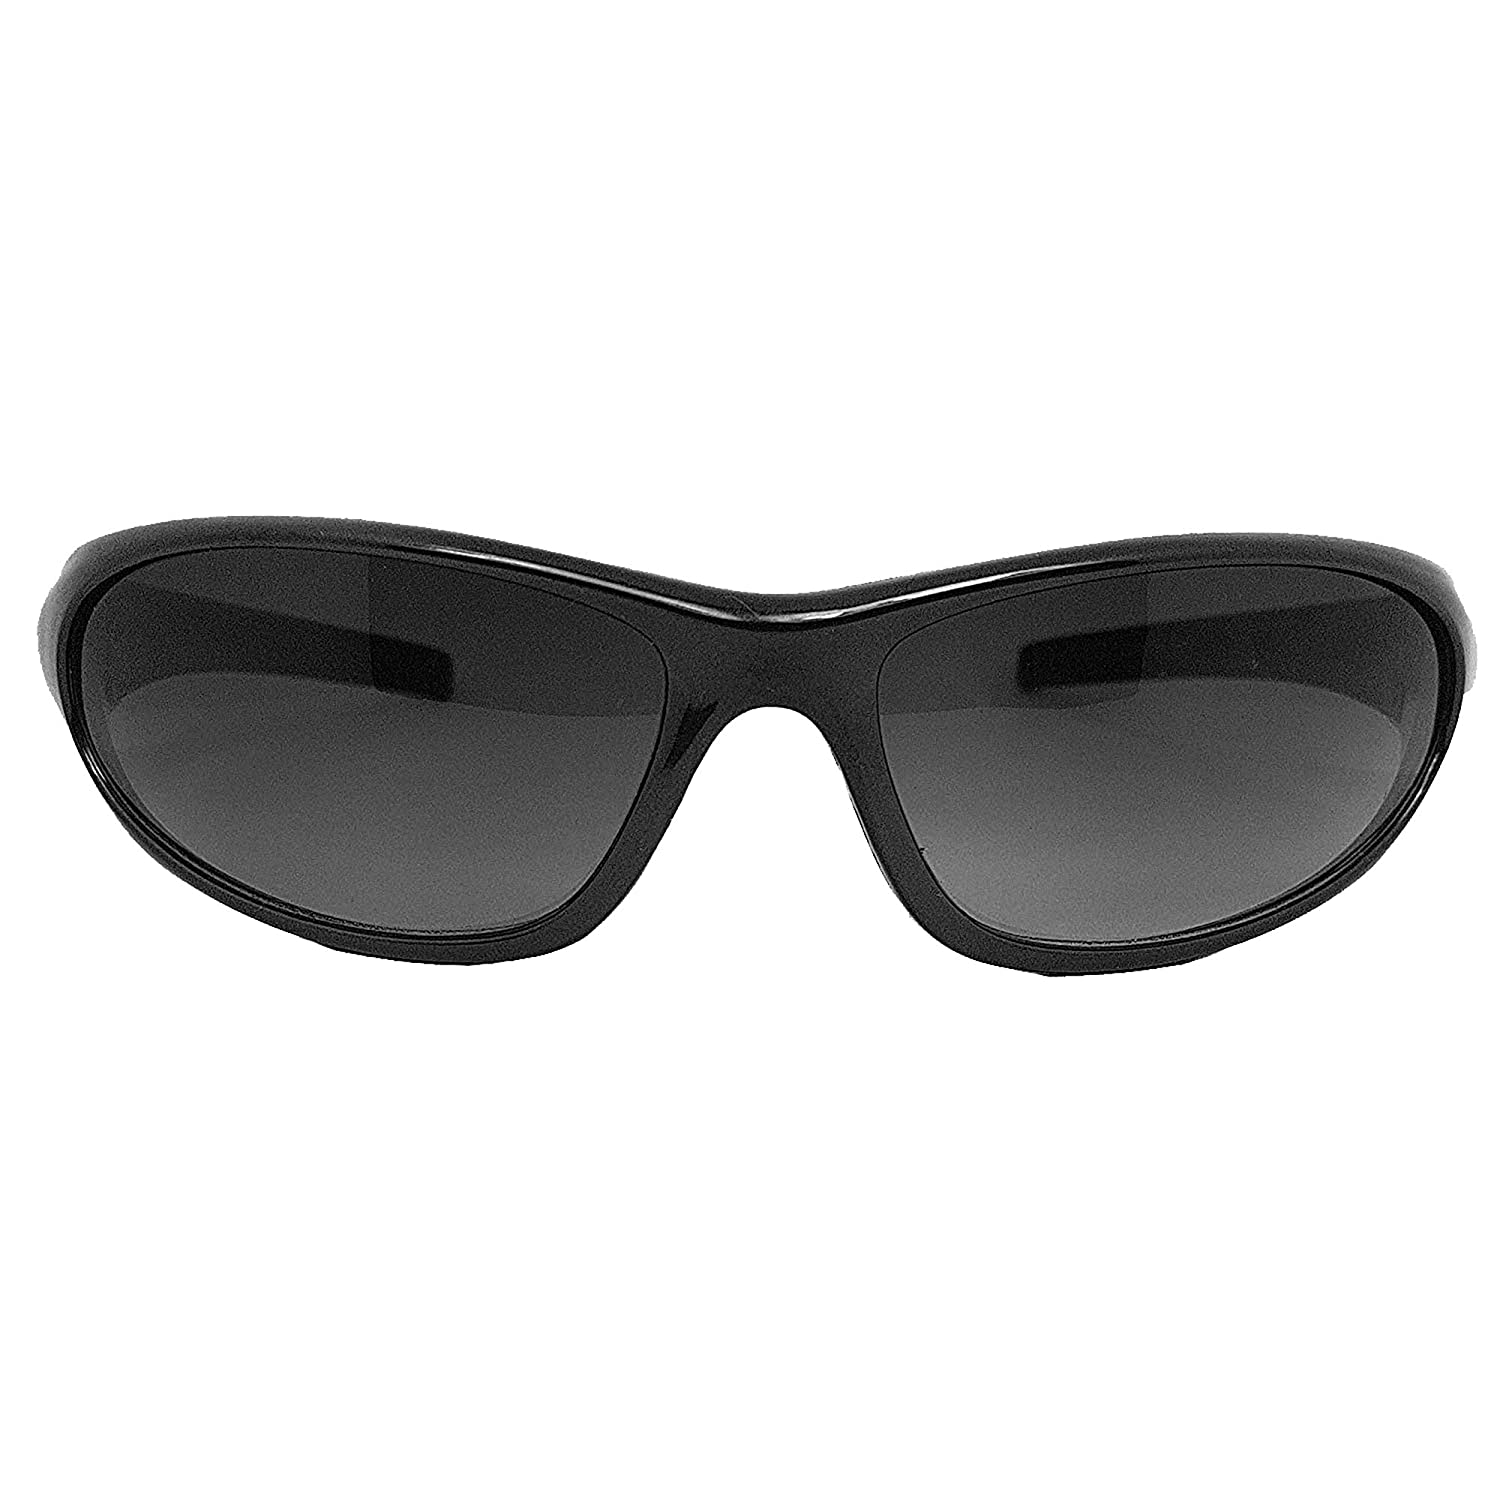 Polo House USA - Gafas de sol para hombre, color marrón: Amazon.es ...